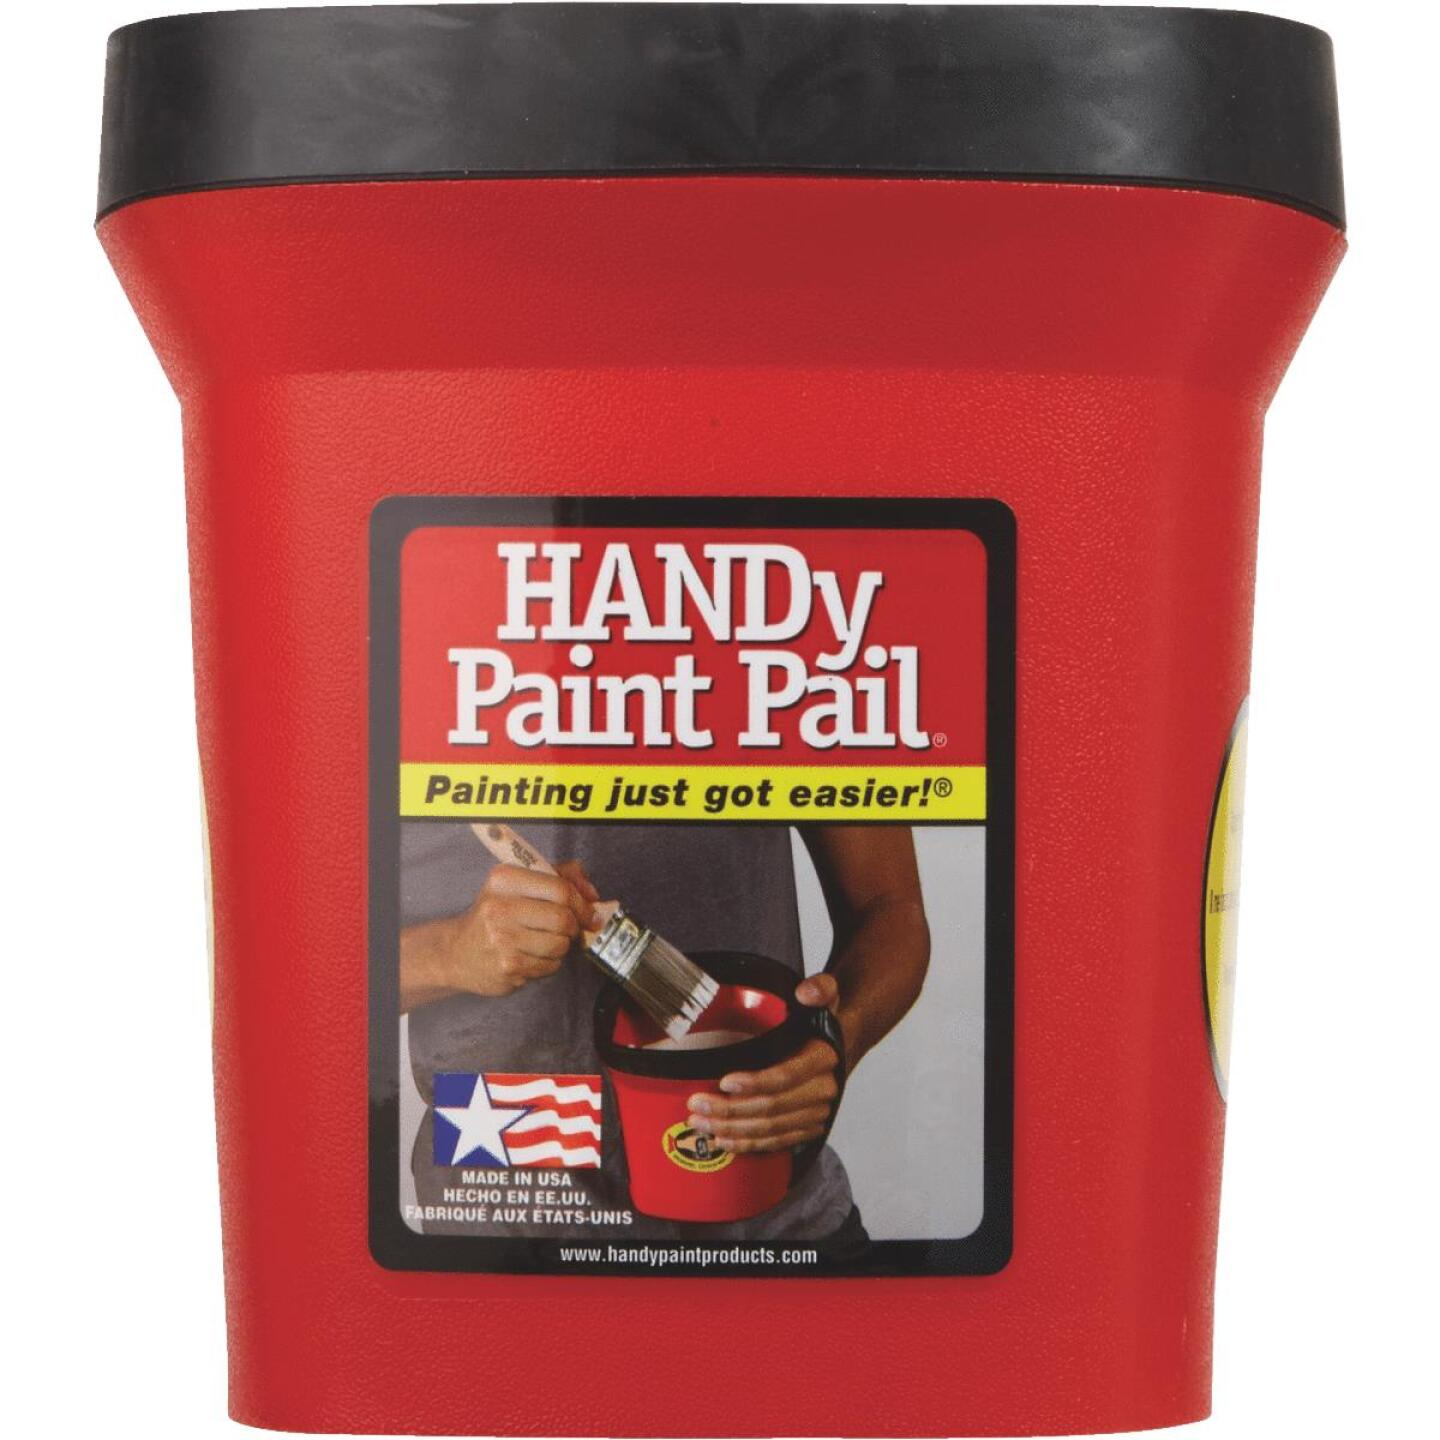 HANDy Paint Pail 1 Qt. Red Painter's Bucket w/Adjustable Strap And Magnetic Brush Holder Image 4